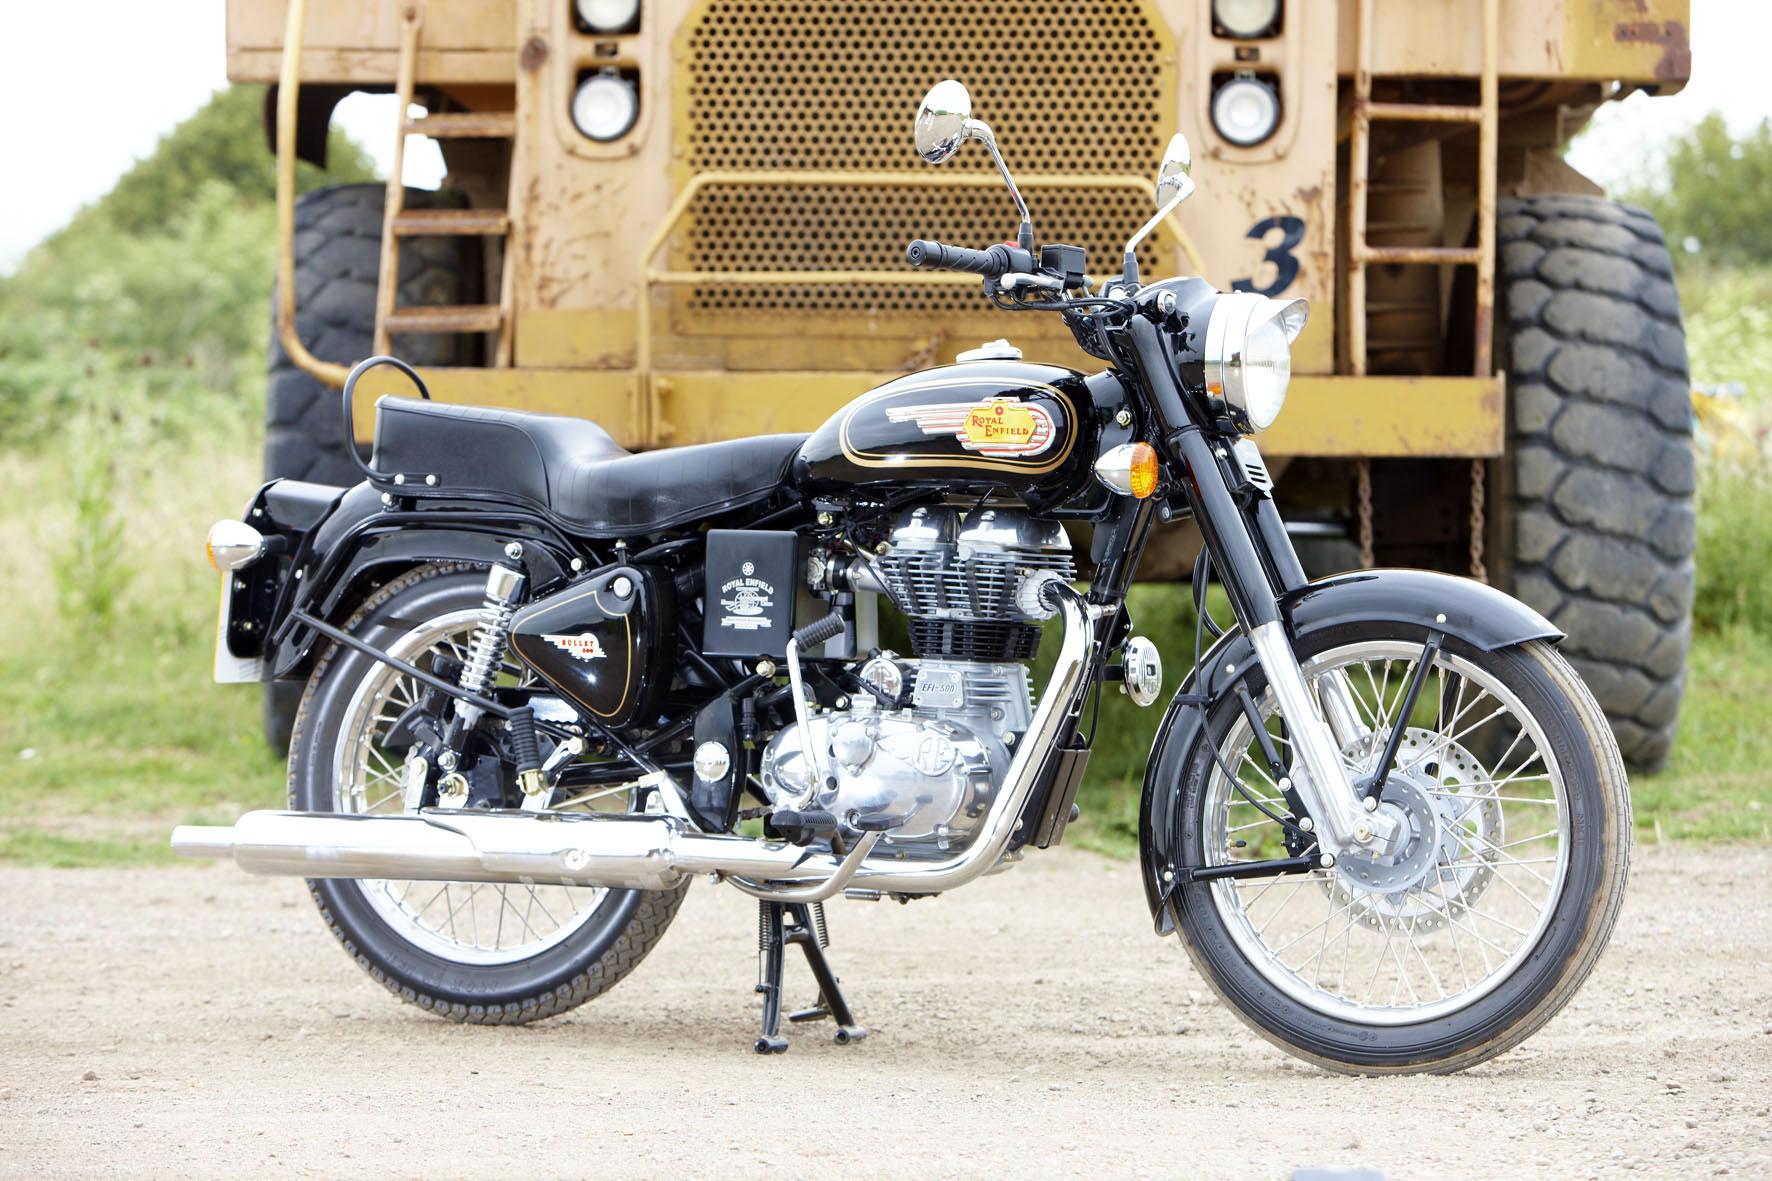 Royal Enfield Bullet 500 Army images #170664